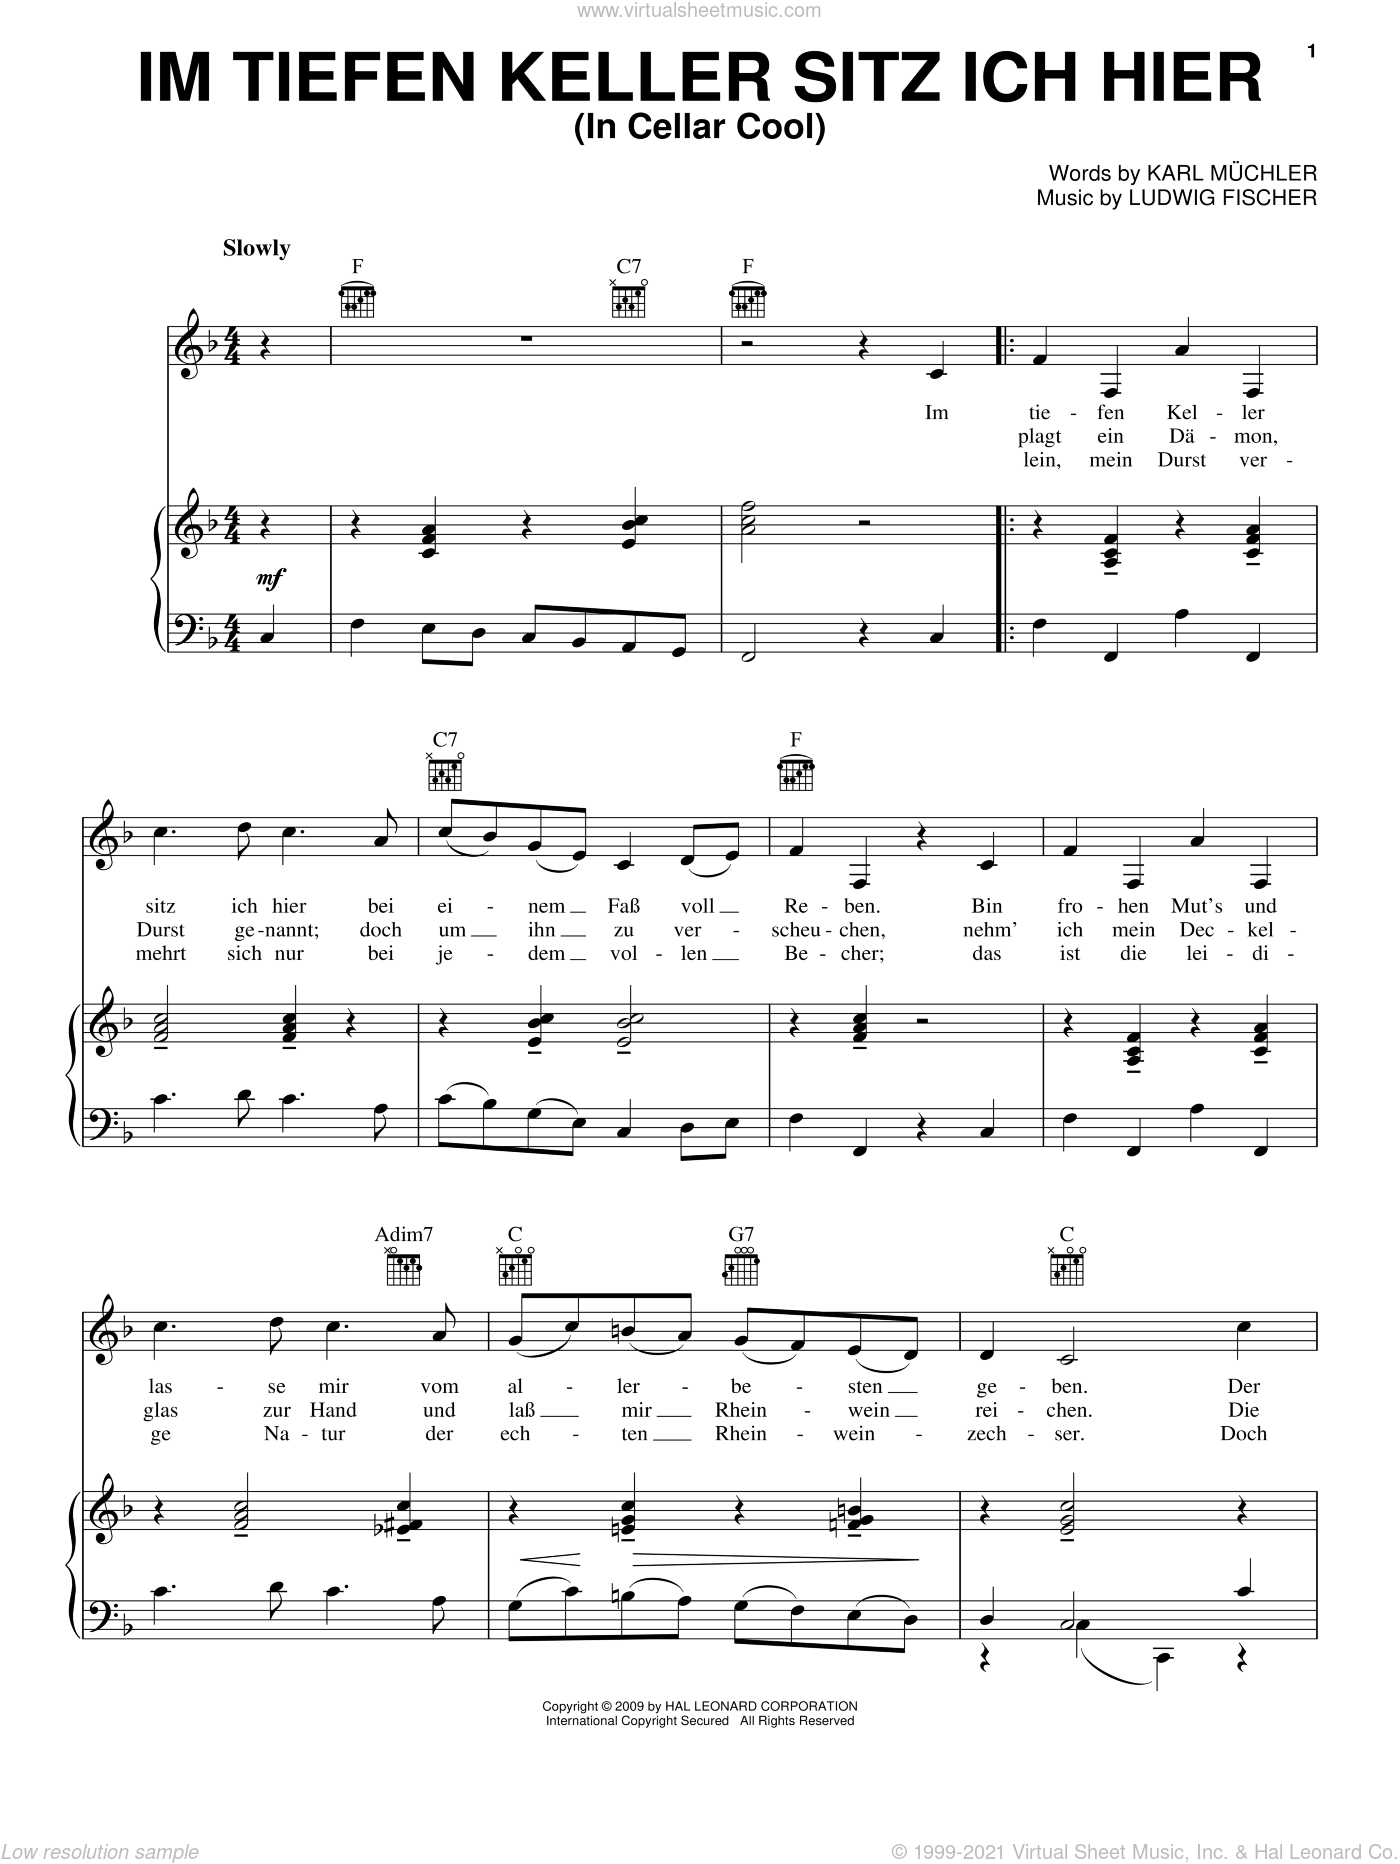 Im Tiefen Keller Sitz Ich Hier (In Cellar Cool) sheet music for voice, piano or guitar by Karl Muchler